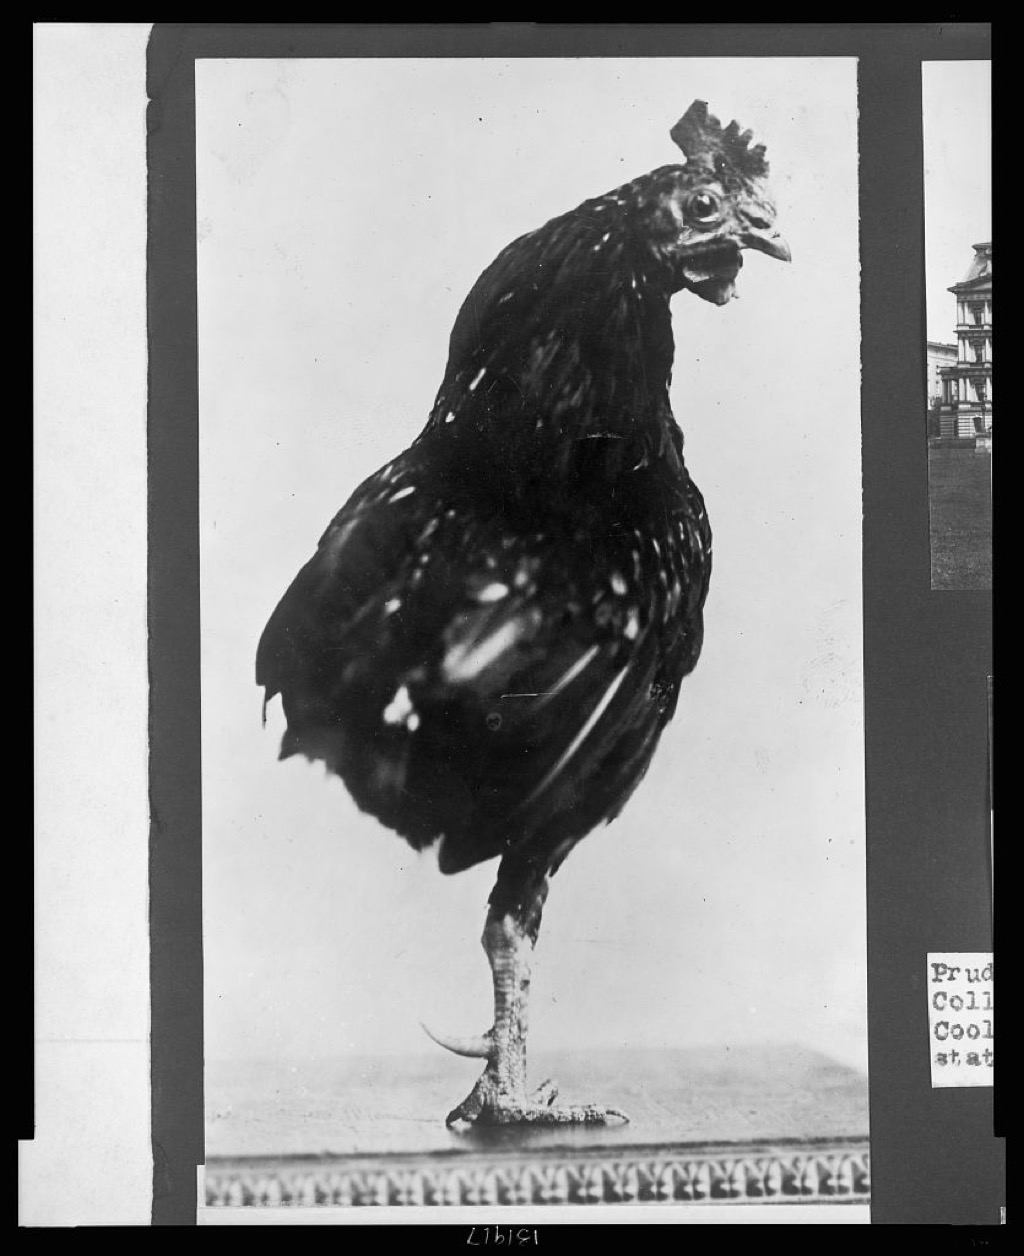 Theodore Roosevelt's one-legged pet rooster